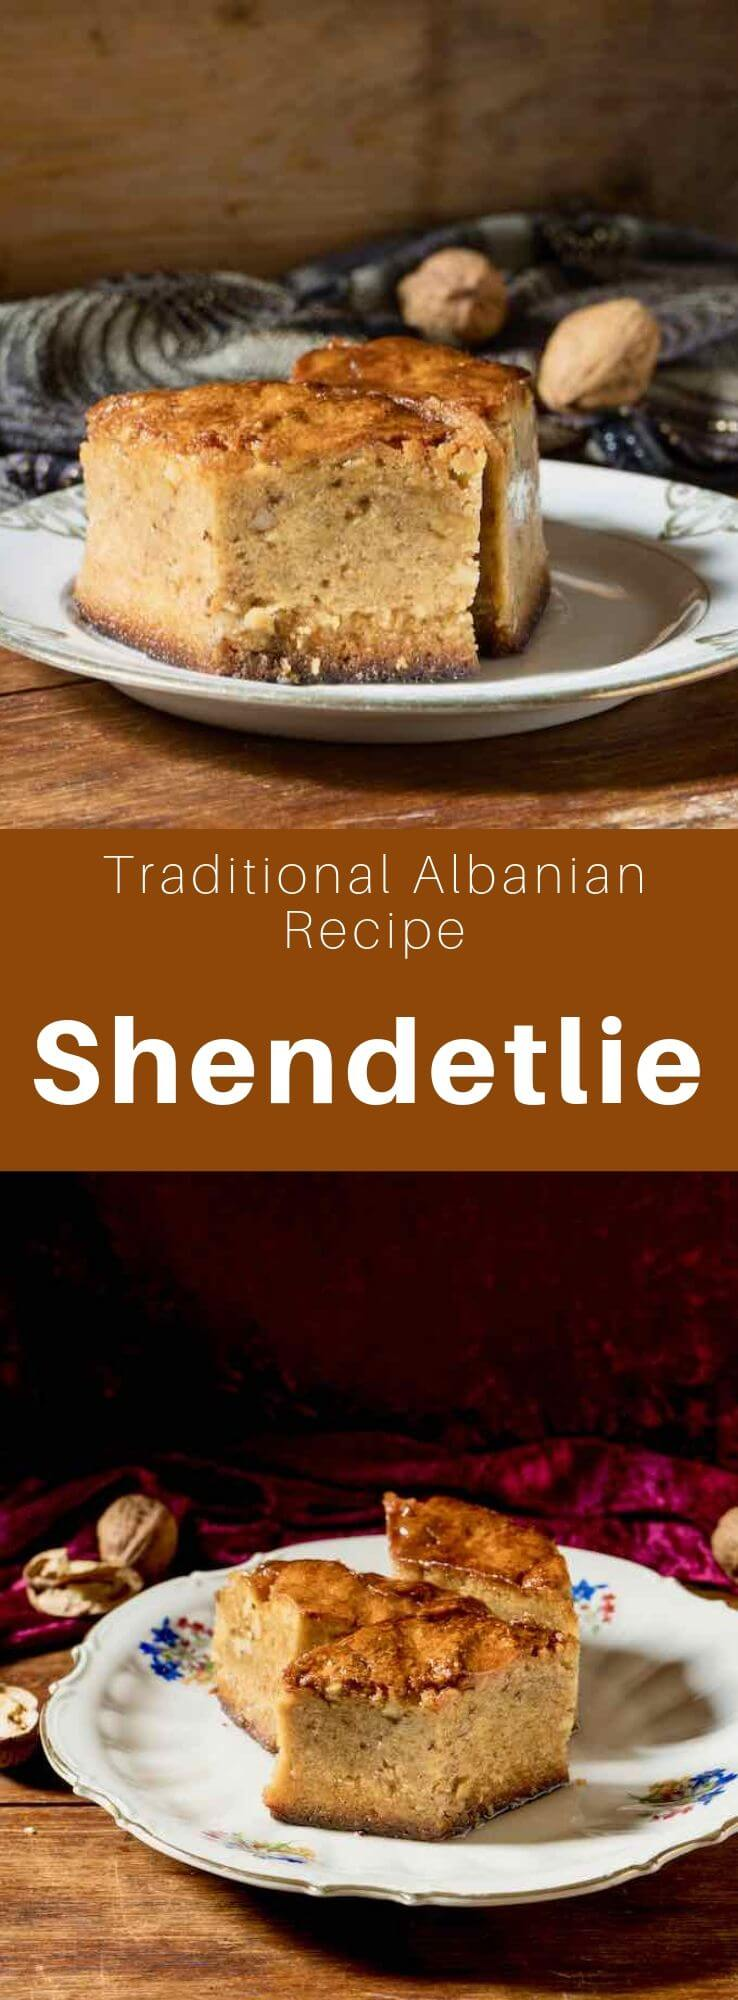 The shendetlie is a delicious traditional cake originally from Albania, made from honey and walnuts and soaked in a sugar syrup. #Albania #AlbanianRecipe #AlbanianCuisine #Balkans #WorldCuisine #196flavors